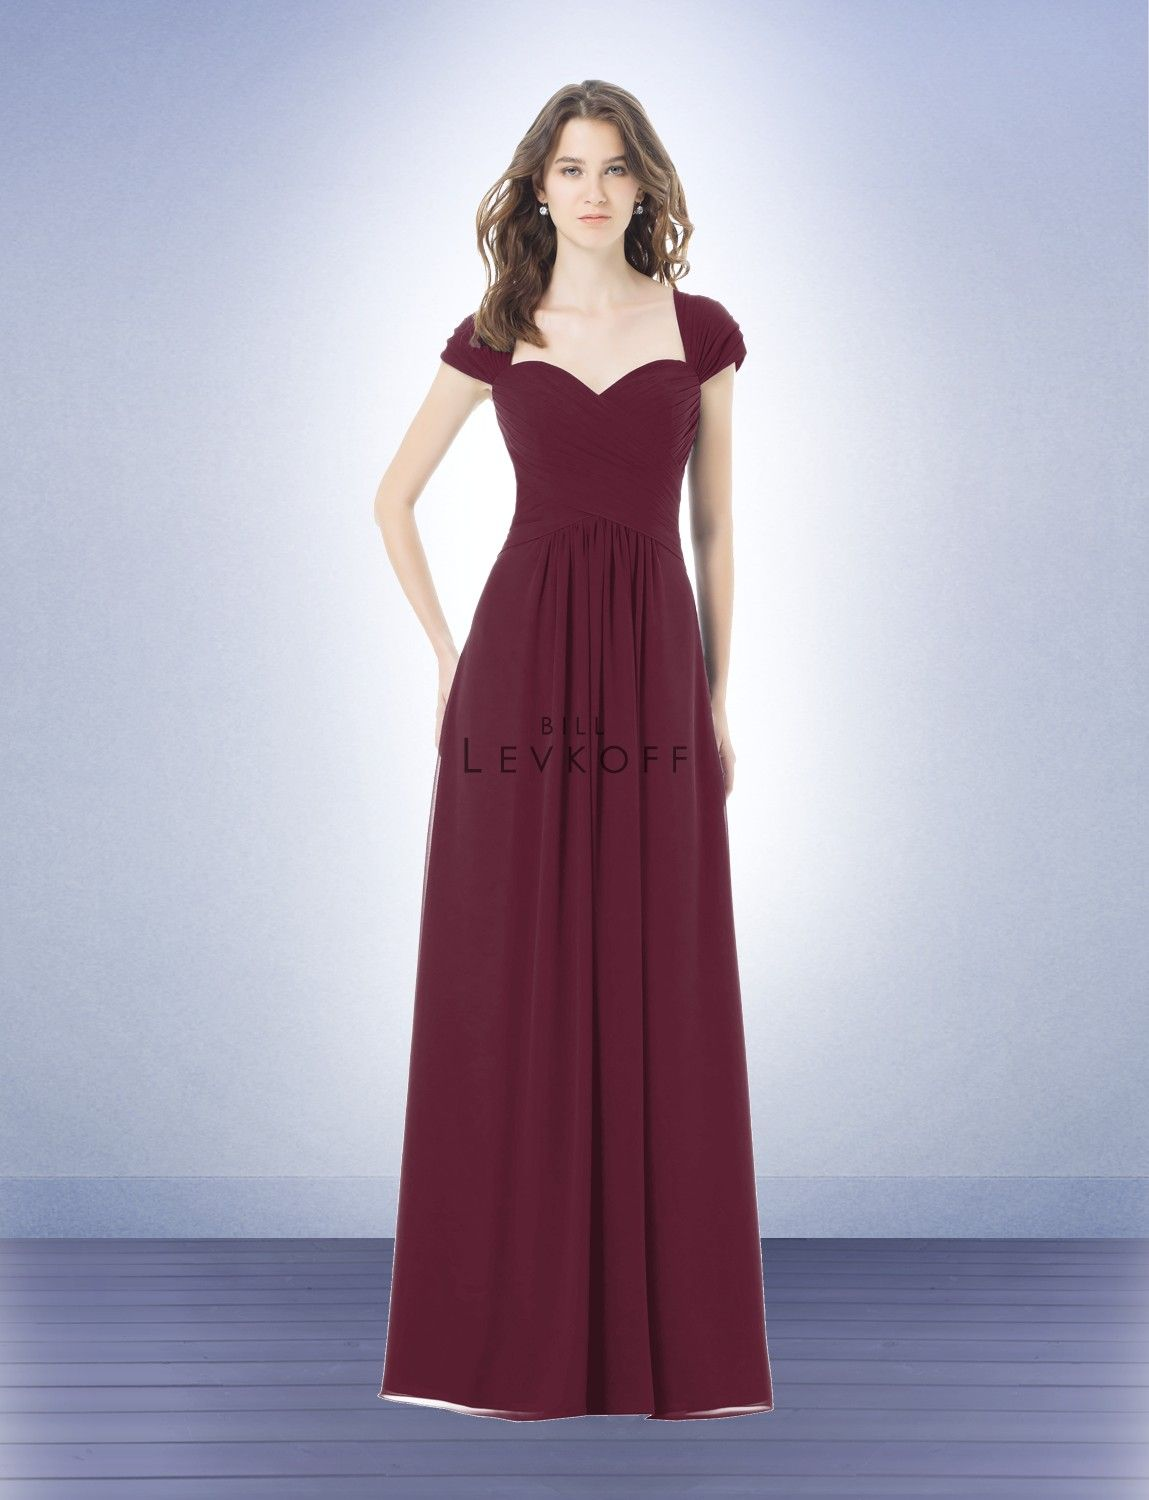 c34897398f7 Bridesmaid Dress Style 496 - Bridesmaid Dresses by Bill Levkoff Comes in  Wine